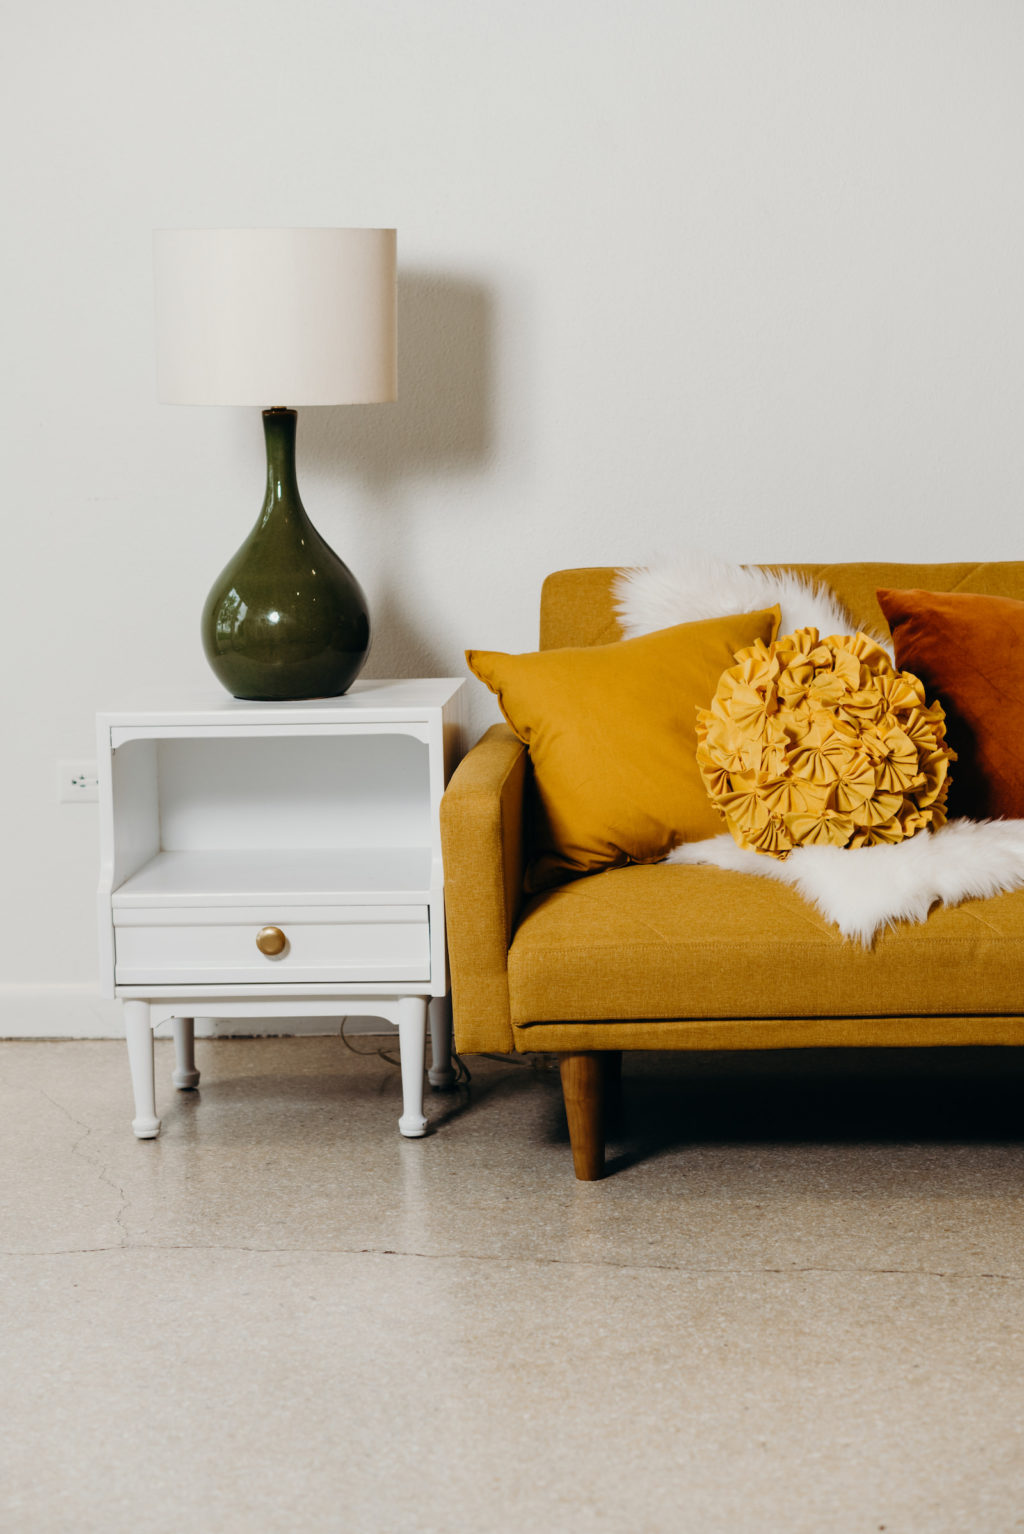 Retro Mid Century Modern Furniture, Mustard Yellow Couch with Pillows, White Fur Blanket, White Side Table with Green Lamp | Wedding Venue Tampa Garden Club